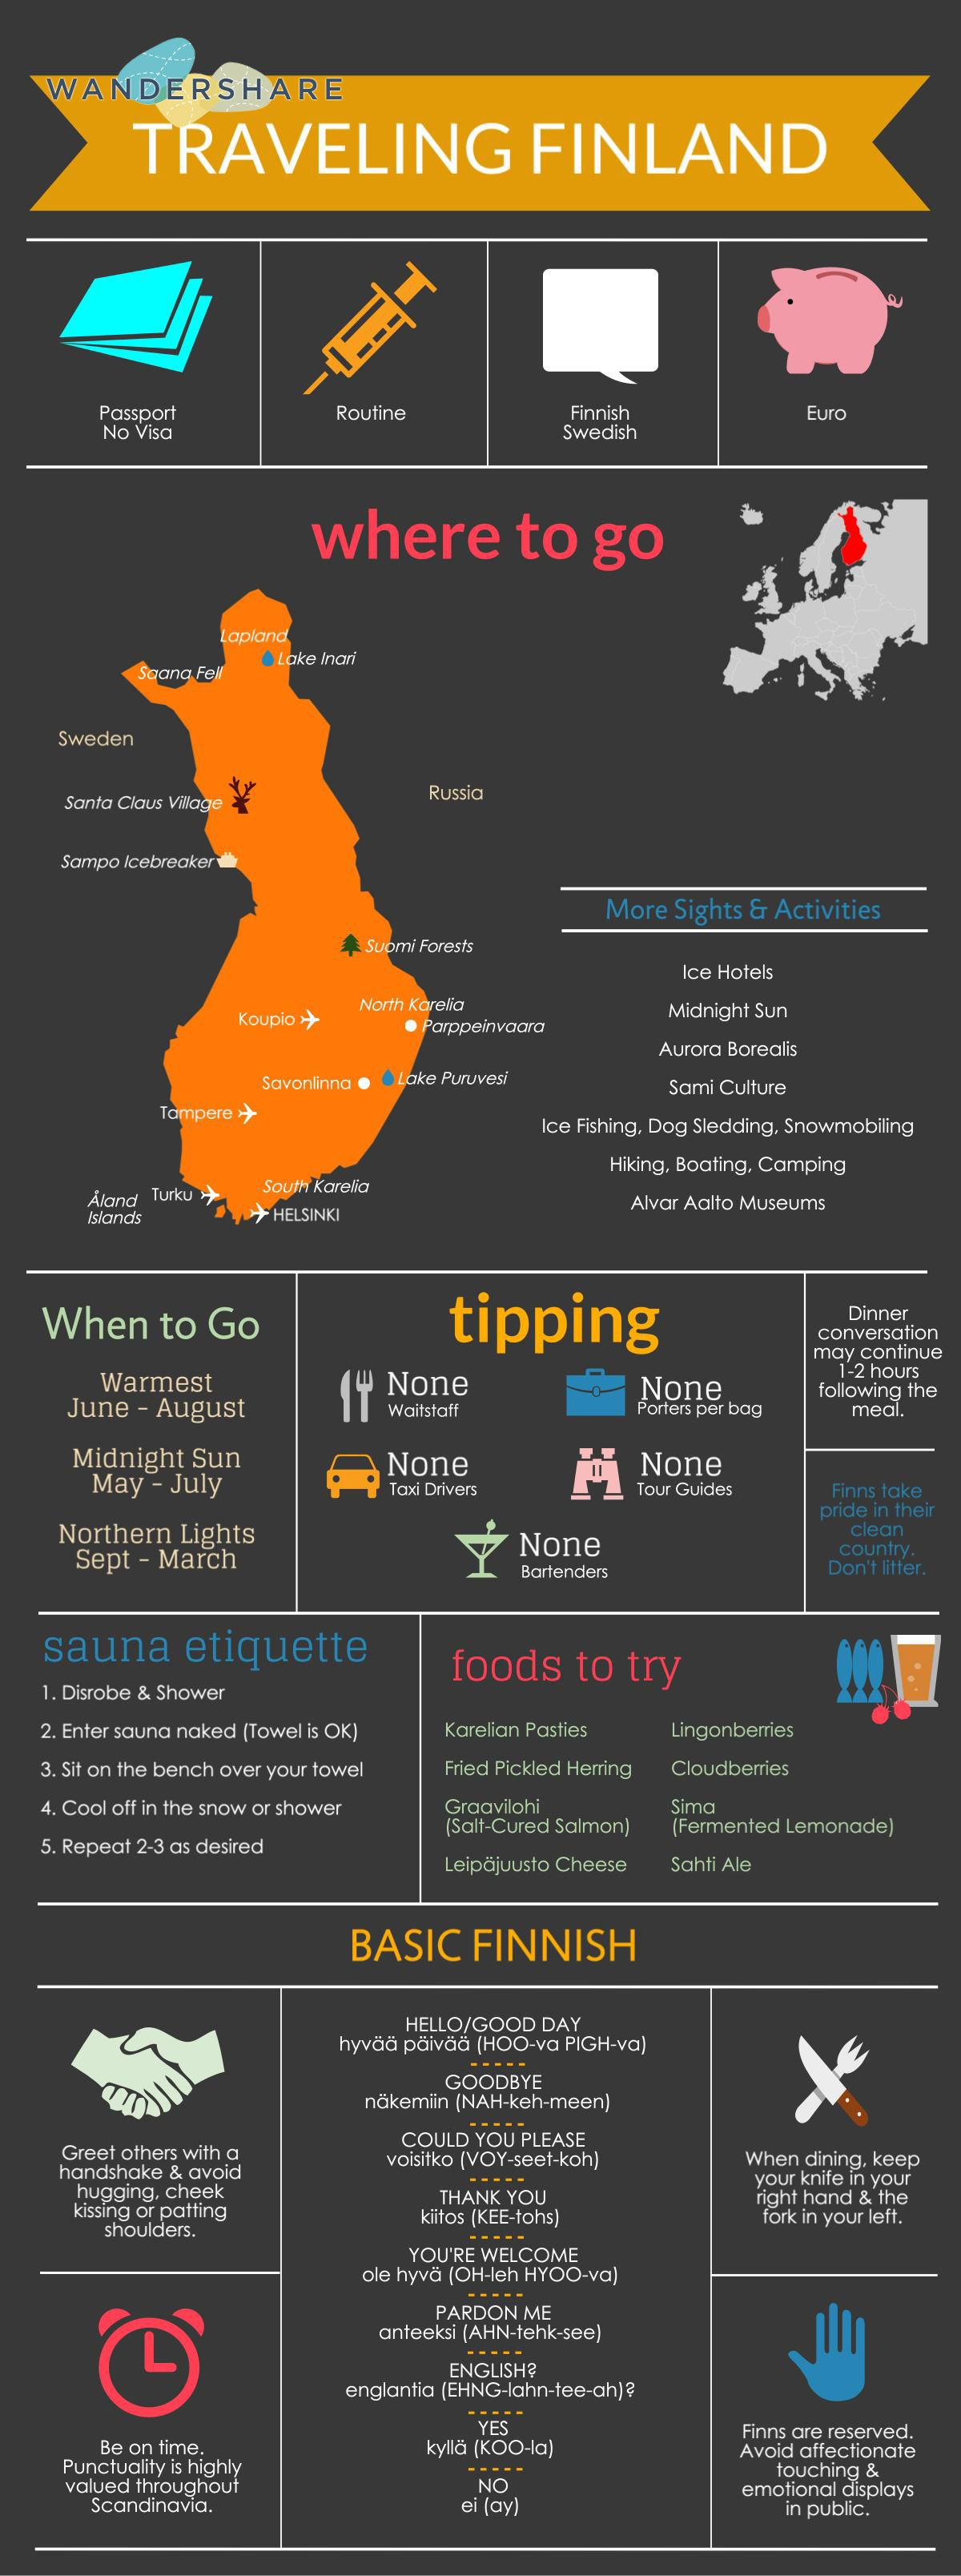 English In Italian: Finland Travel Cheat Sheet; Sign Up At Www.wandershare.com